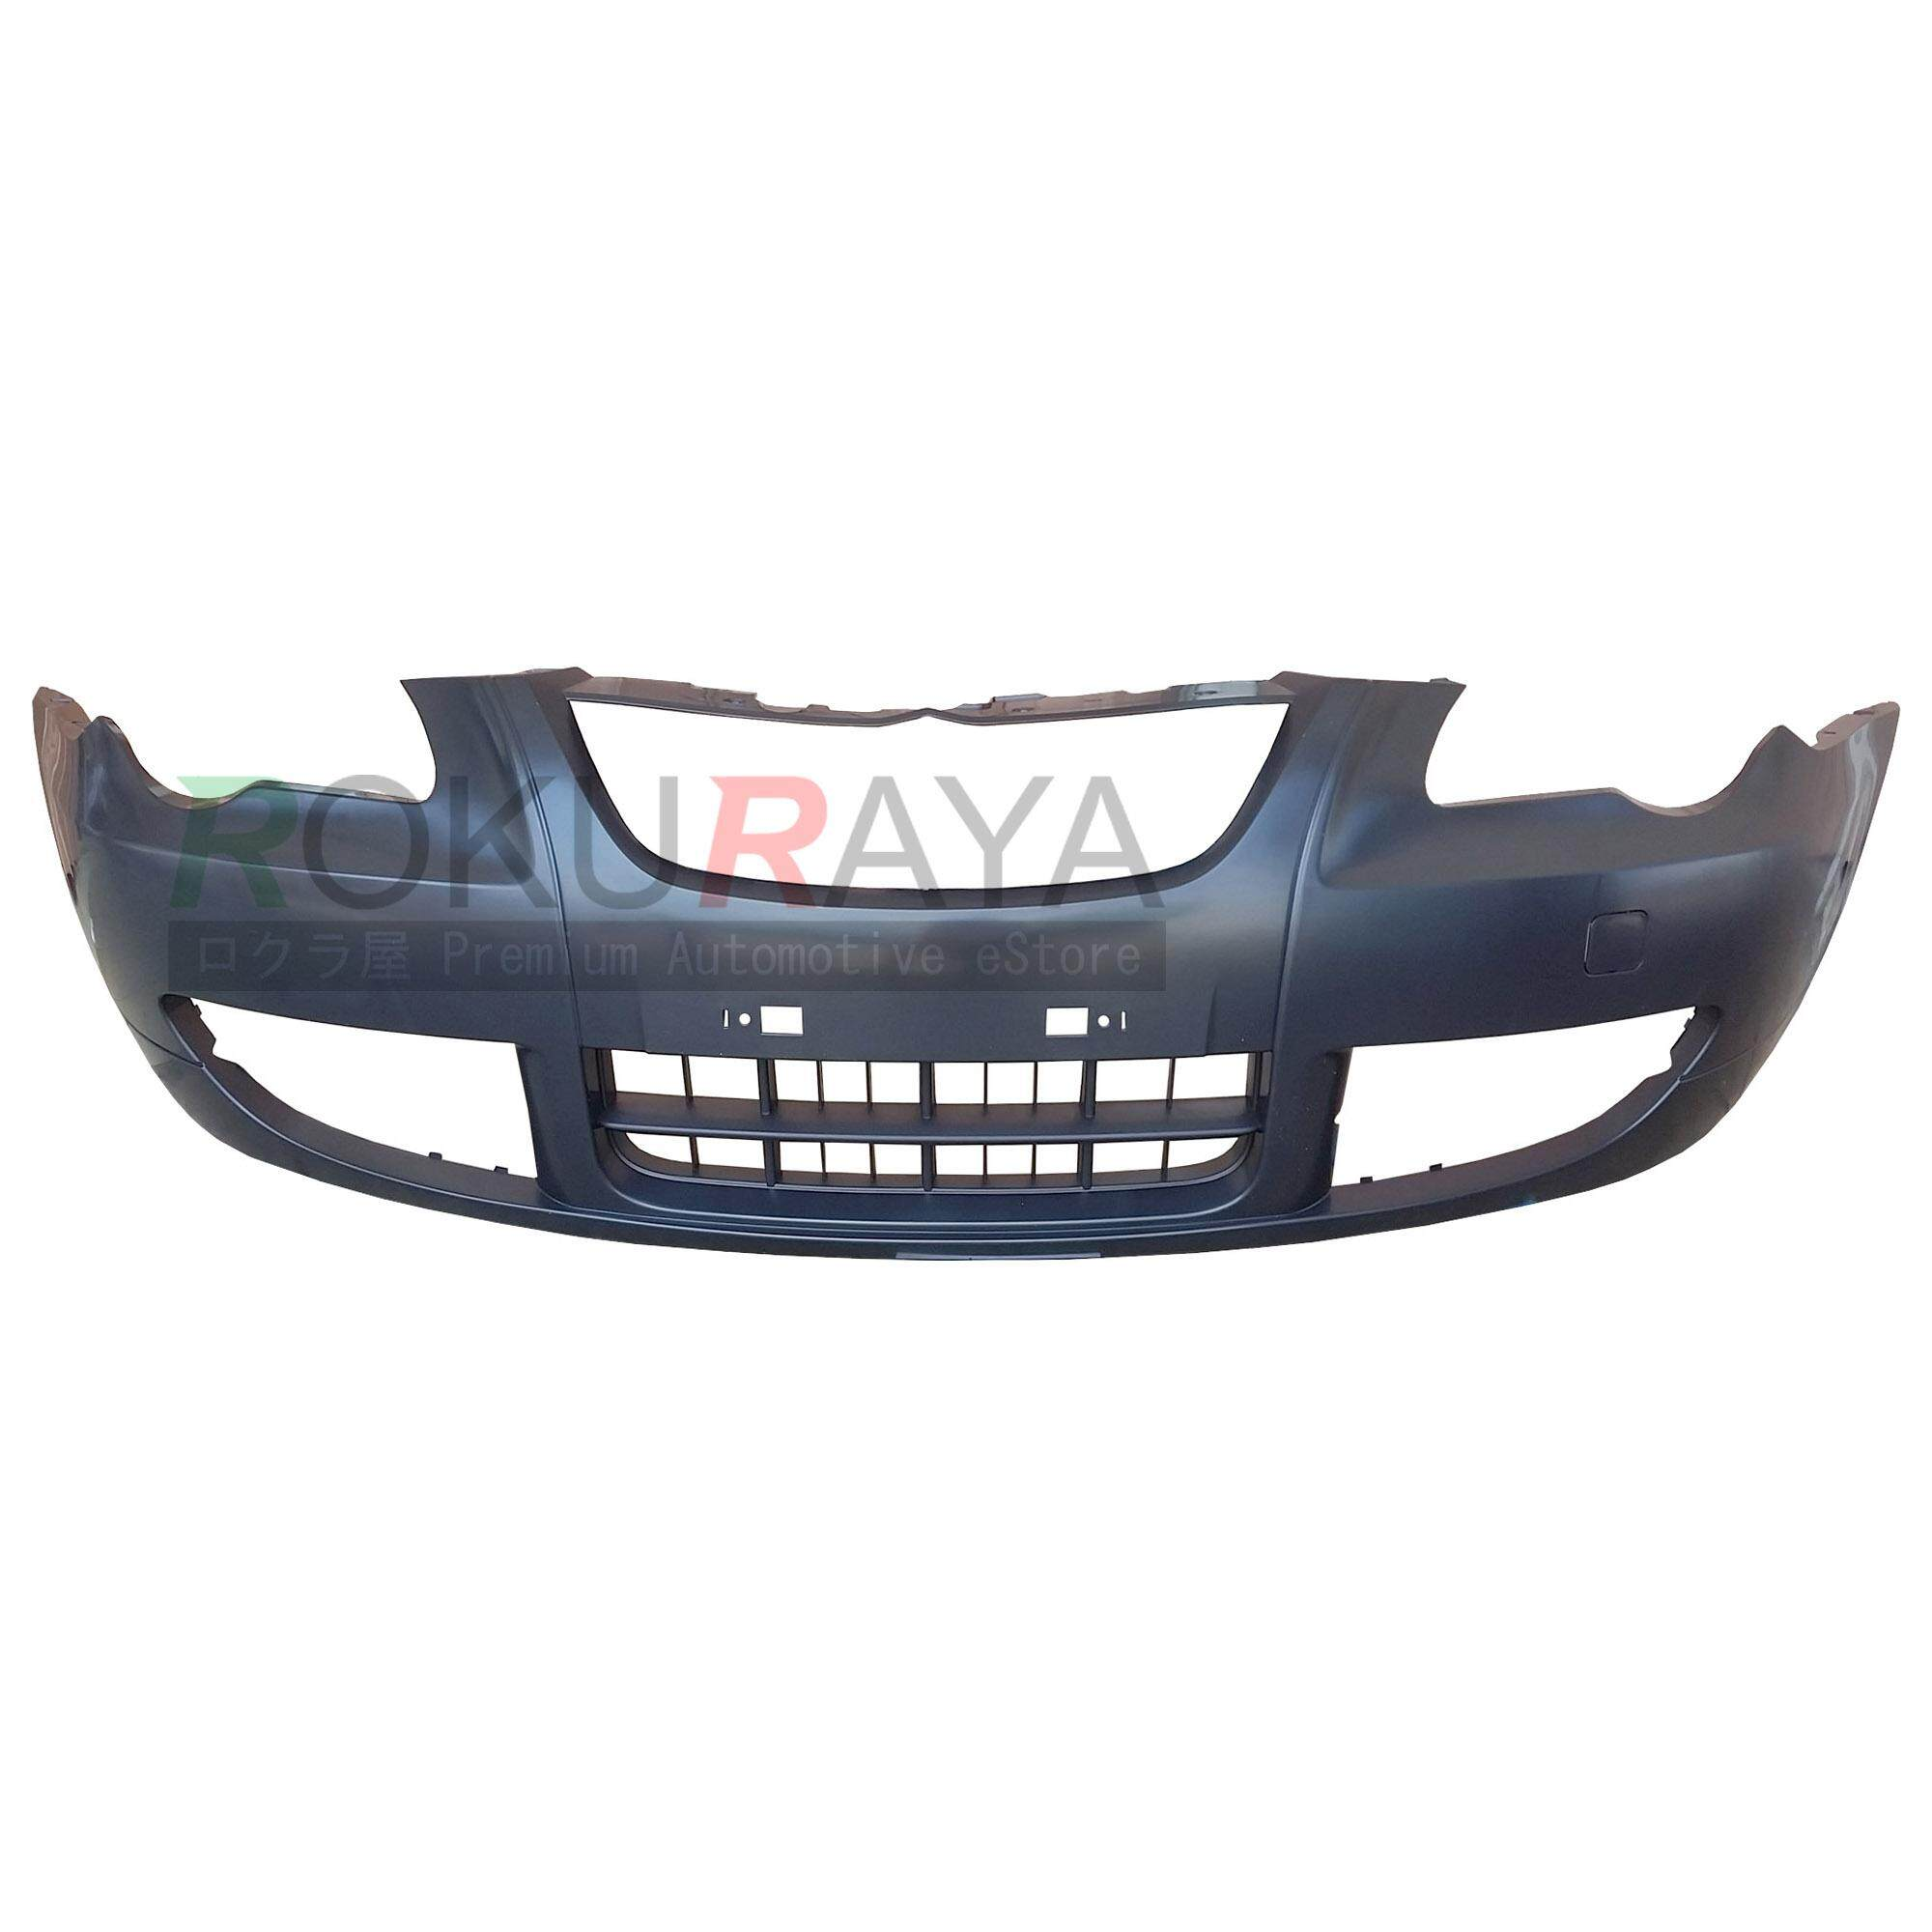 Proton Persona Elegance (2009) Oem Standard Front Bumper Polypropylene Pp Plastic Body Part Oem Replacement Spare Part - Black - Suitable For Gen2 Gen-2 (2004) By Automart Rr.